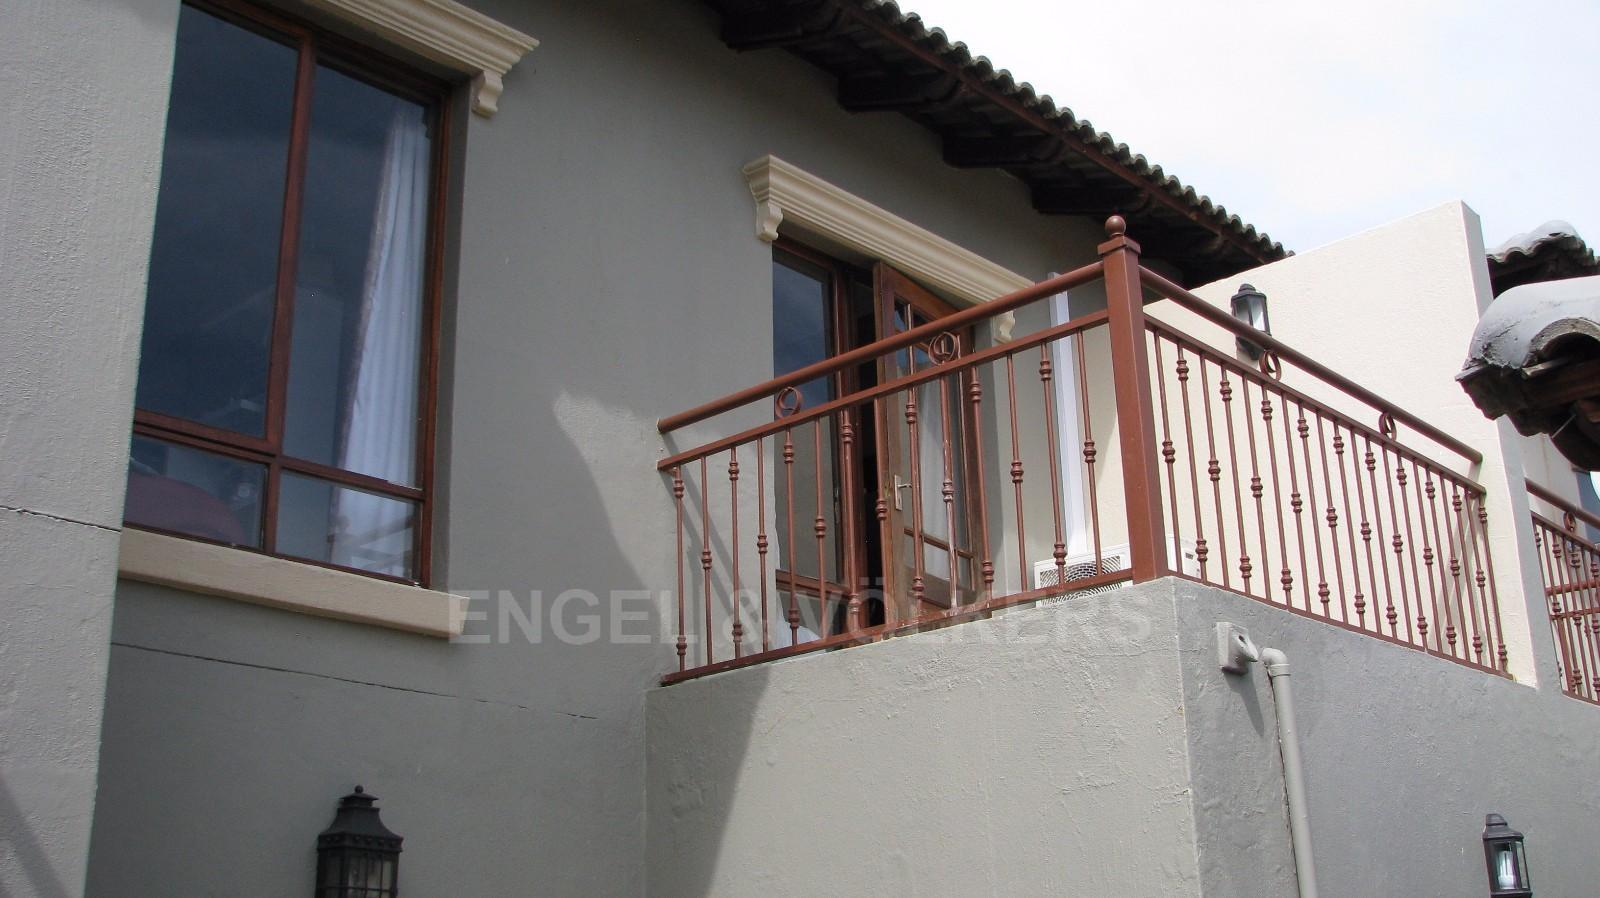 House in Melodie - 2nd Bedroom balcony with views to the Magalies mountains